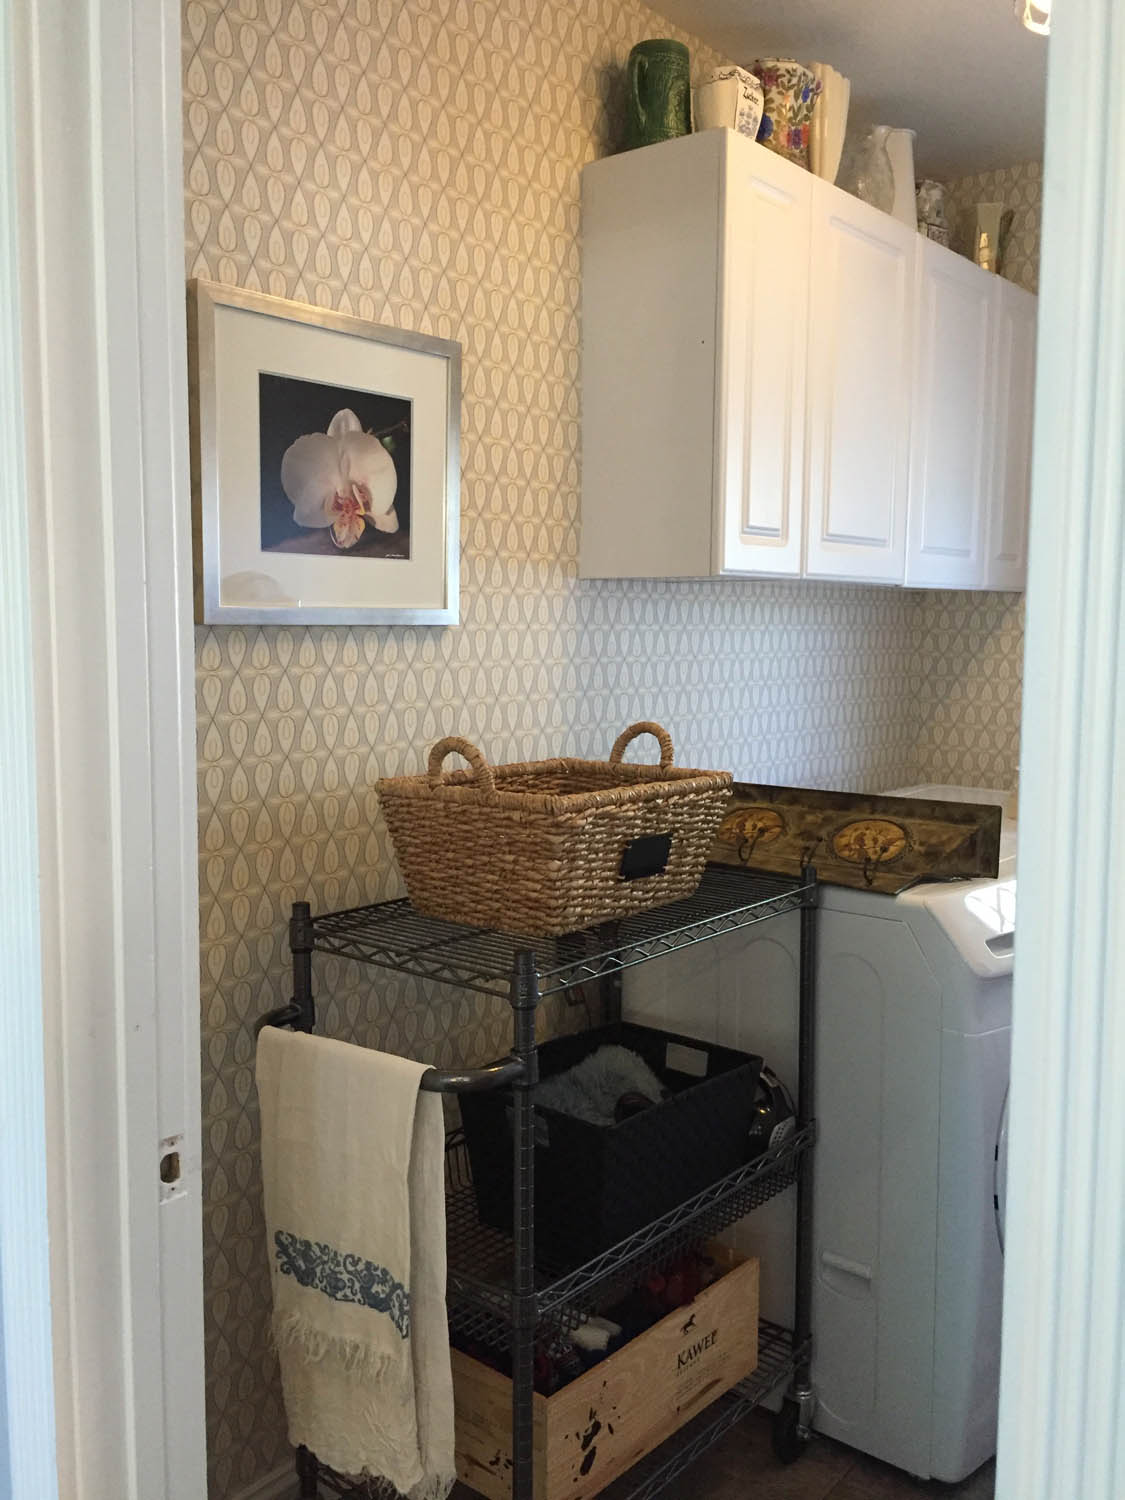 Finished wallpapered laundry room